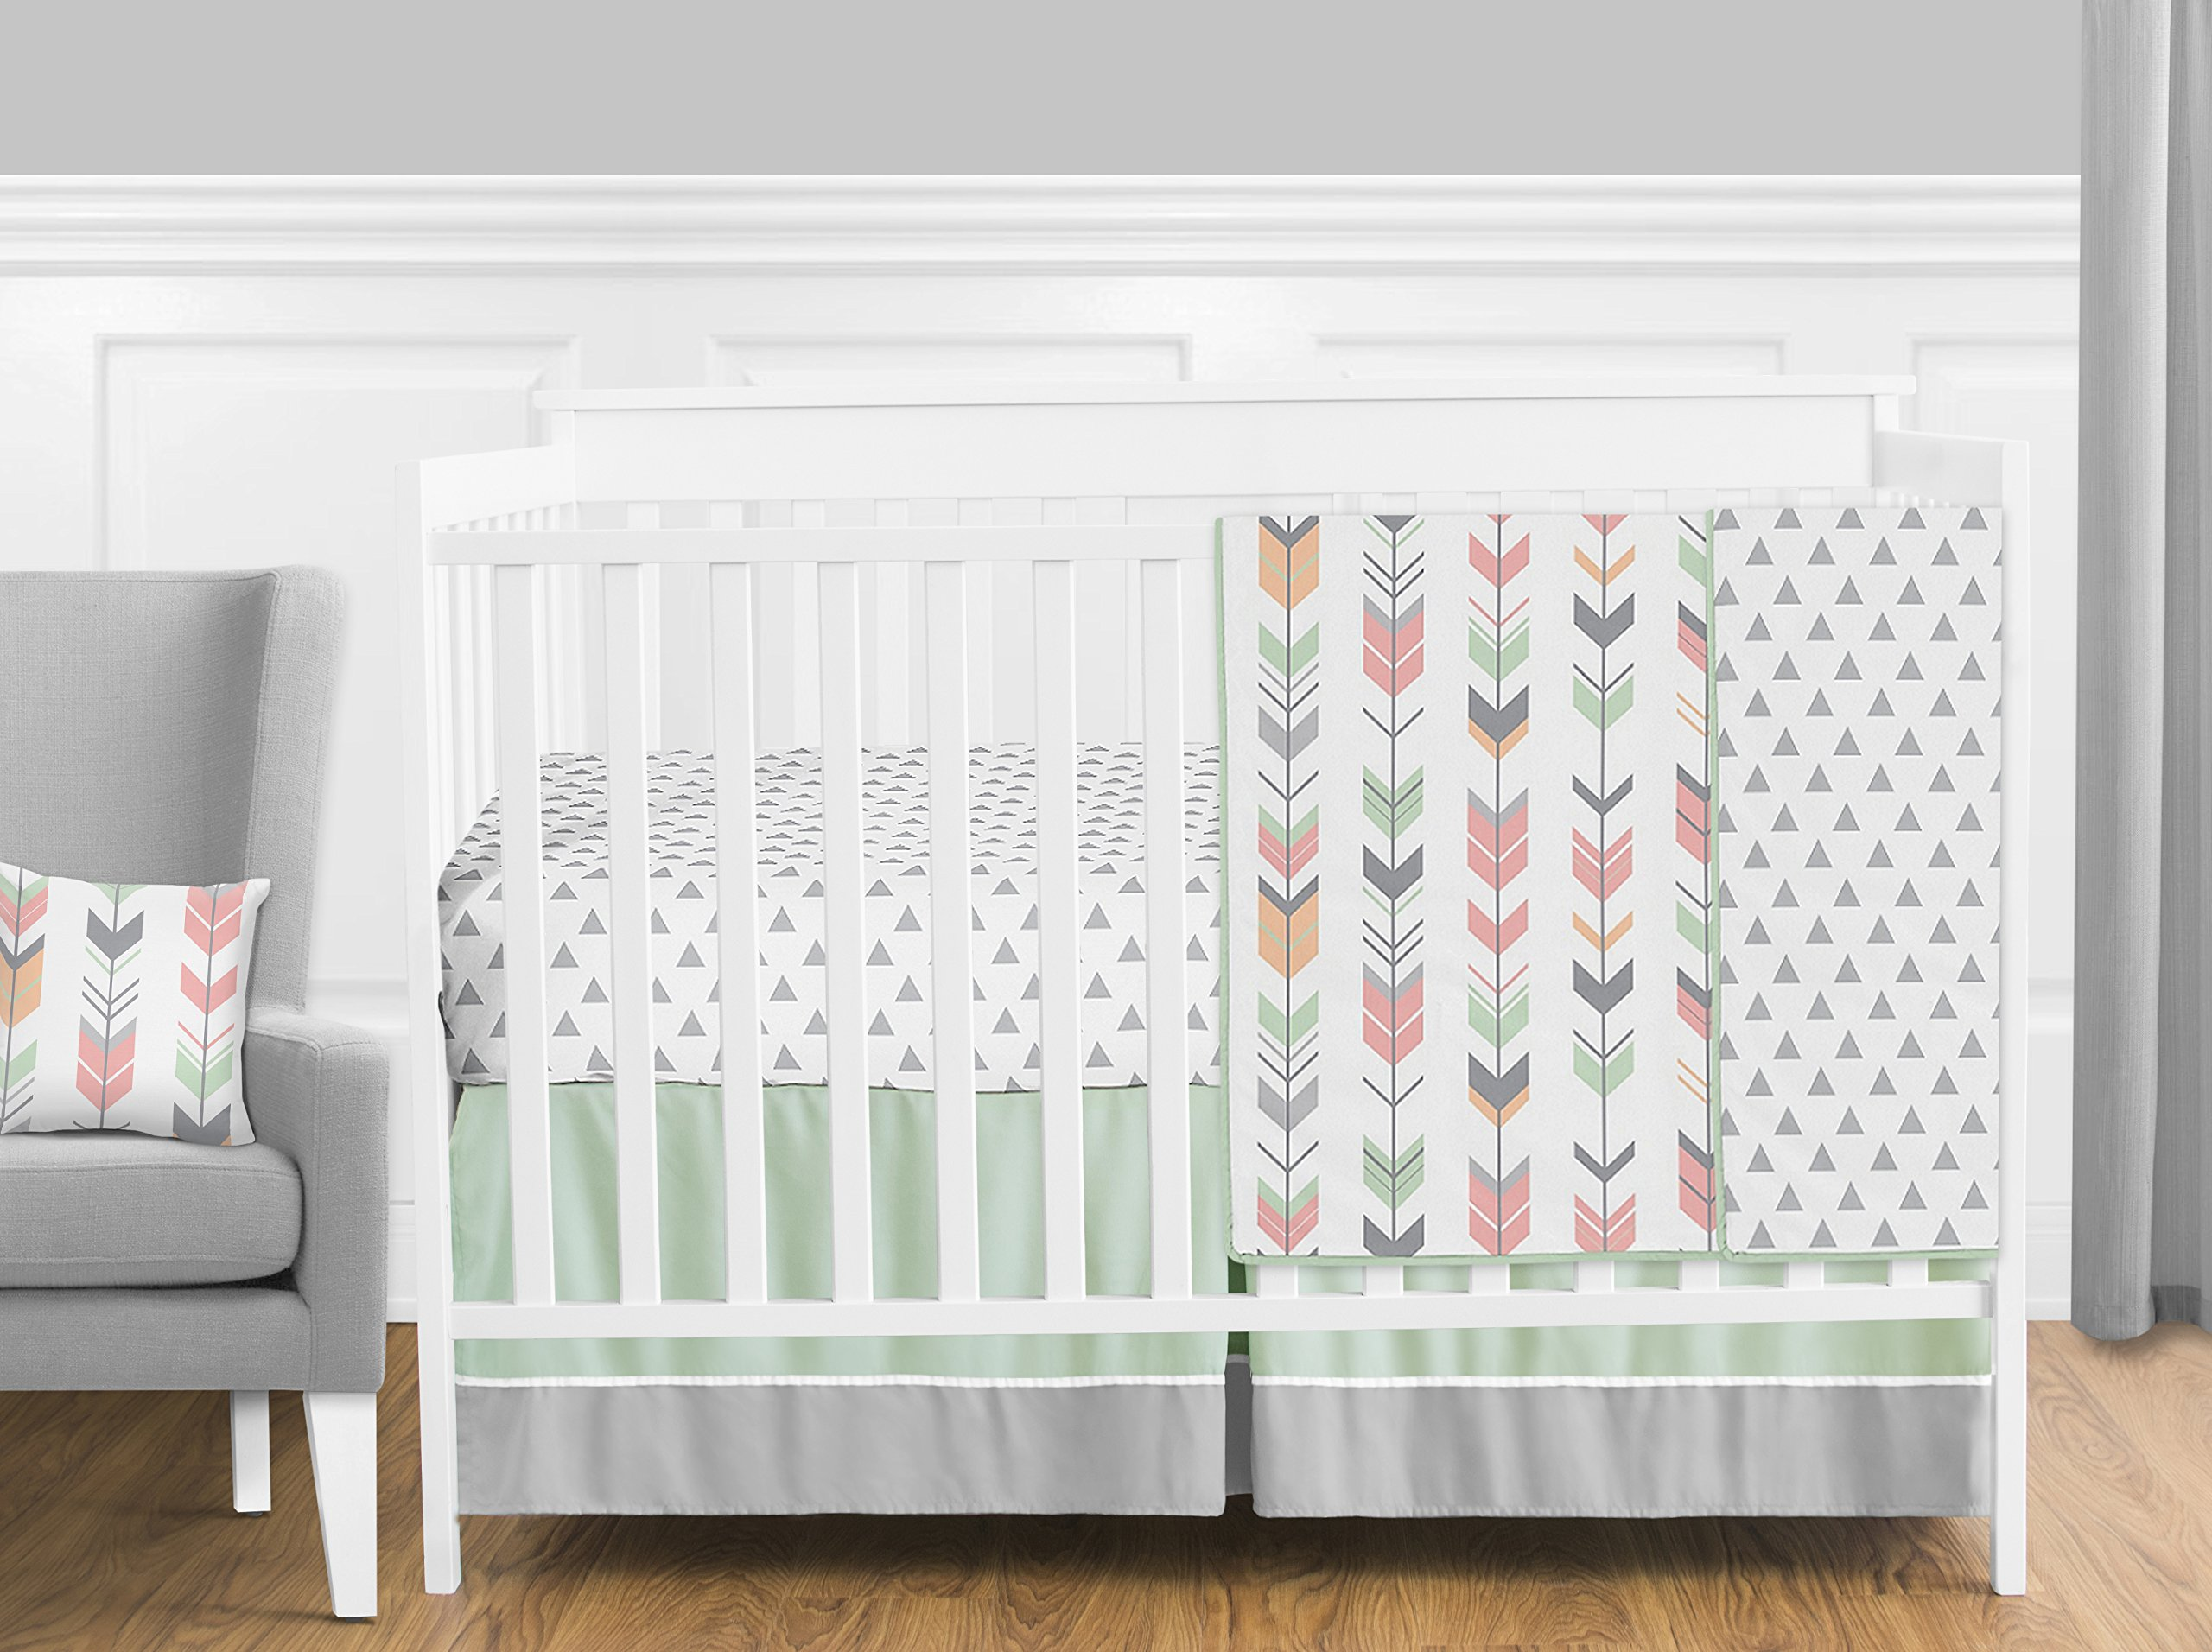 Sweet Jojo Designs 11-Piece Grey, Coral and Mint Woodland Arrow Girls Crib Bed Bedding Set Without Bumper